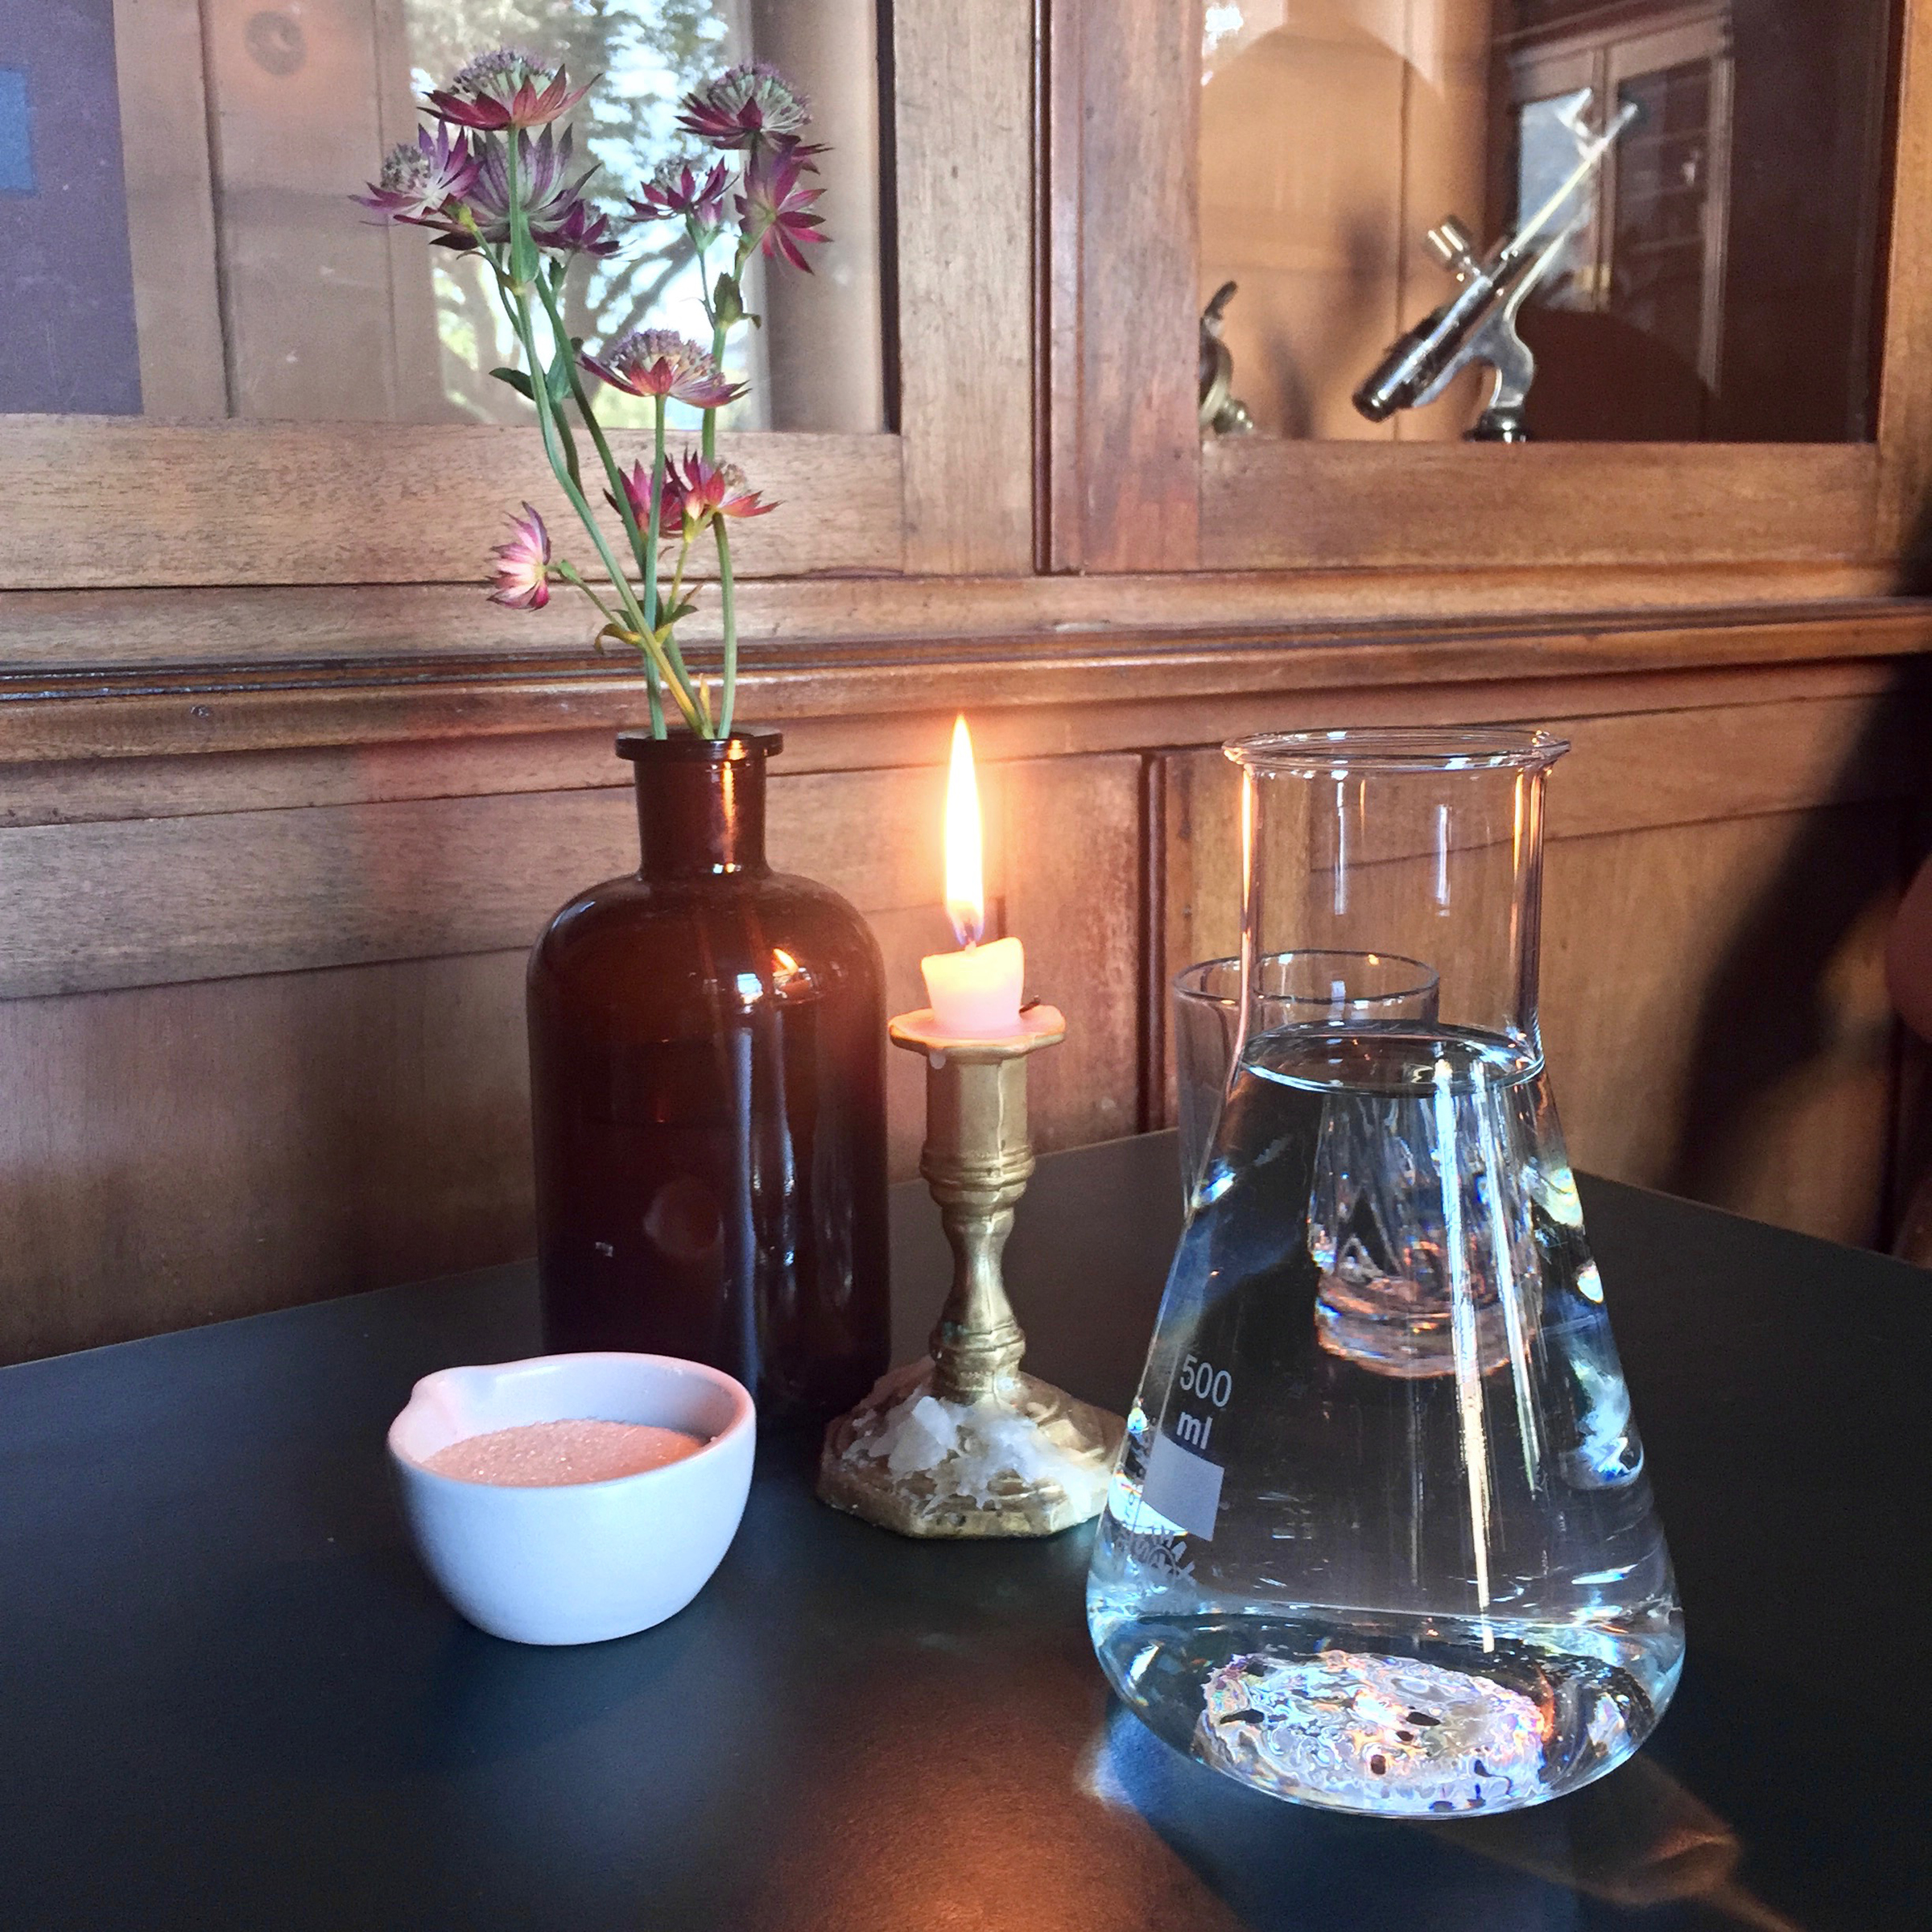 Ora in Kreuzberg was a must for us, recently created in an old pharmacy in the east, this chic coffee shop is open til 4am, with a simple menu but fabulous old school apothecary decor.